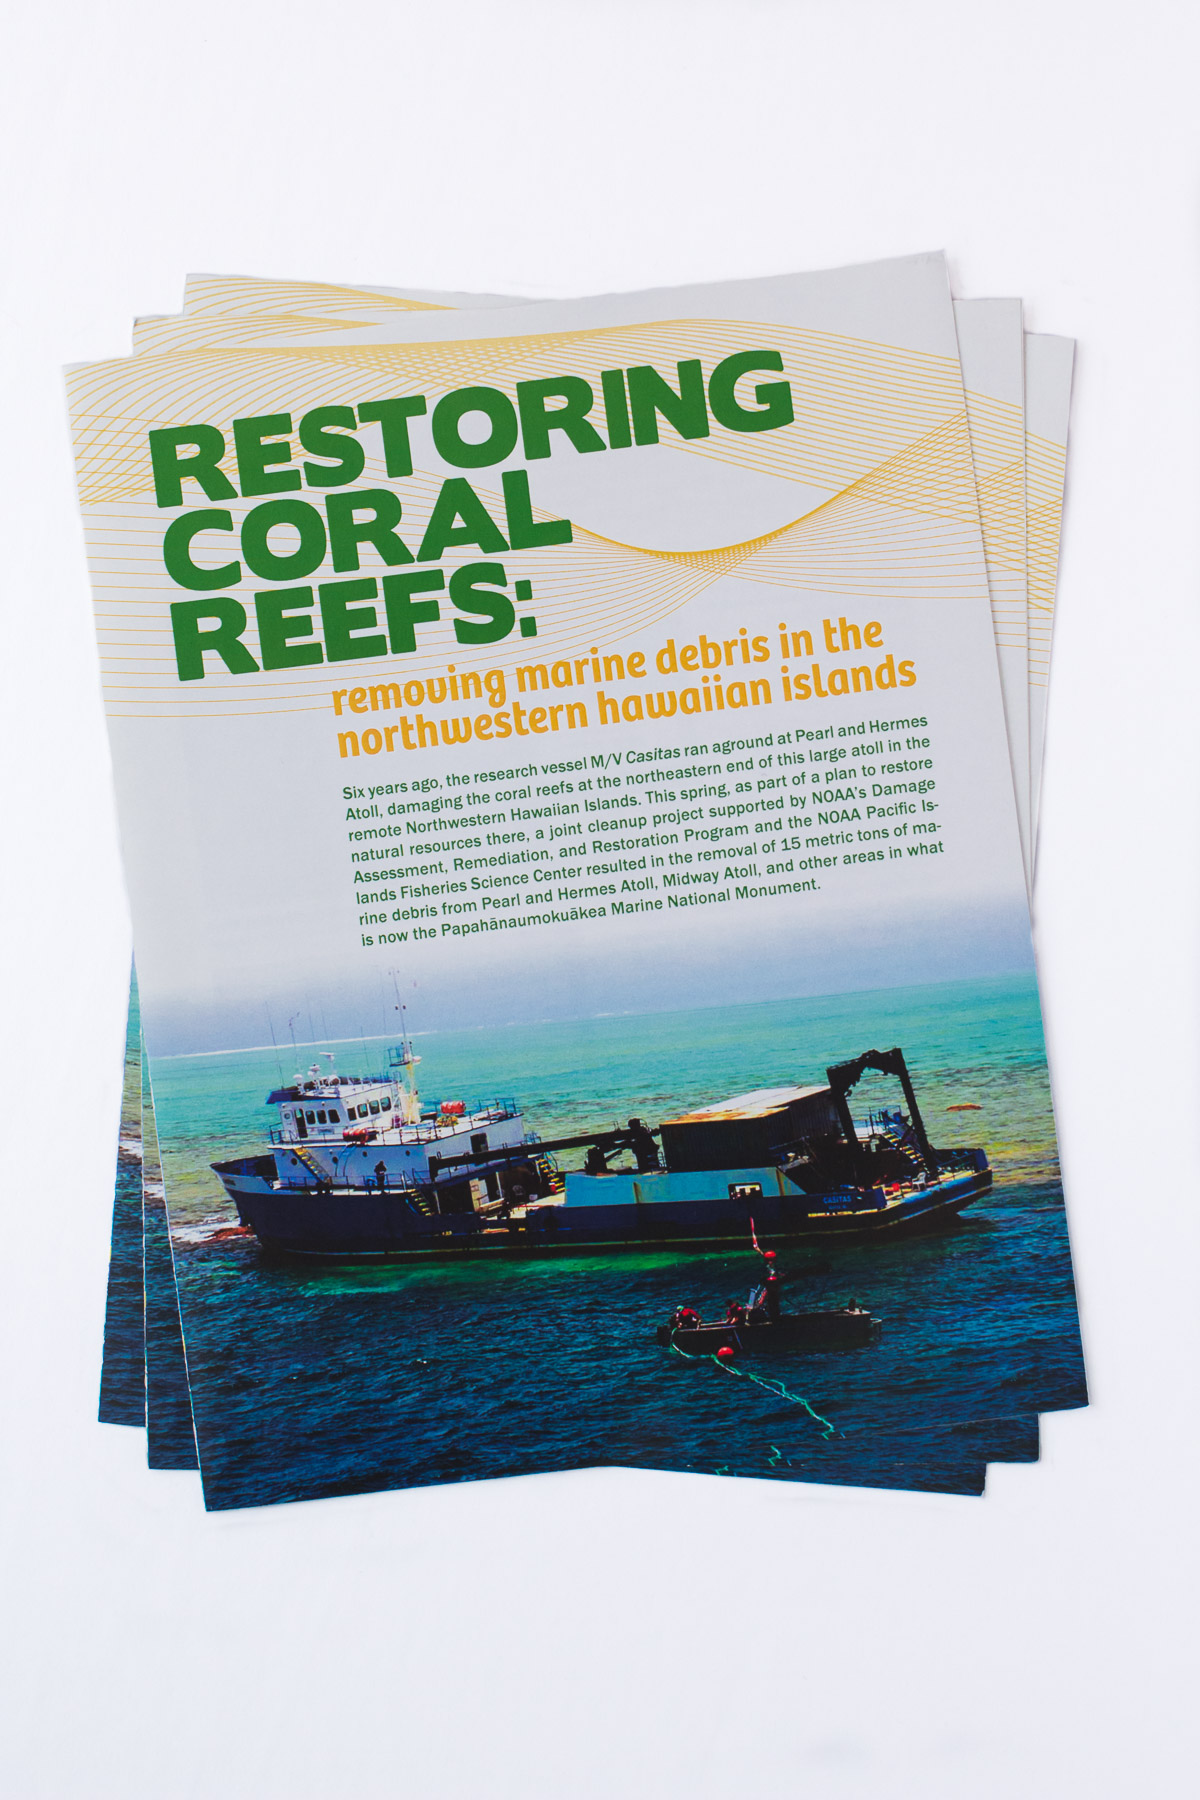 We created all graphics, layout, and design in this booklet. download entire booklet here:  https://www.pifsc.noaa.gov/cred/restoring_coral_reefs_removing_marine_debris_in_the_nwhi.pdf